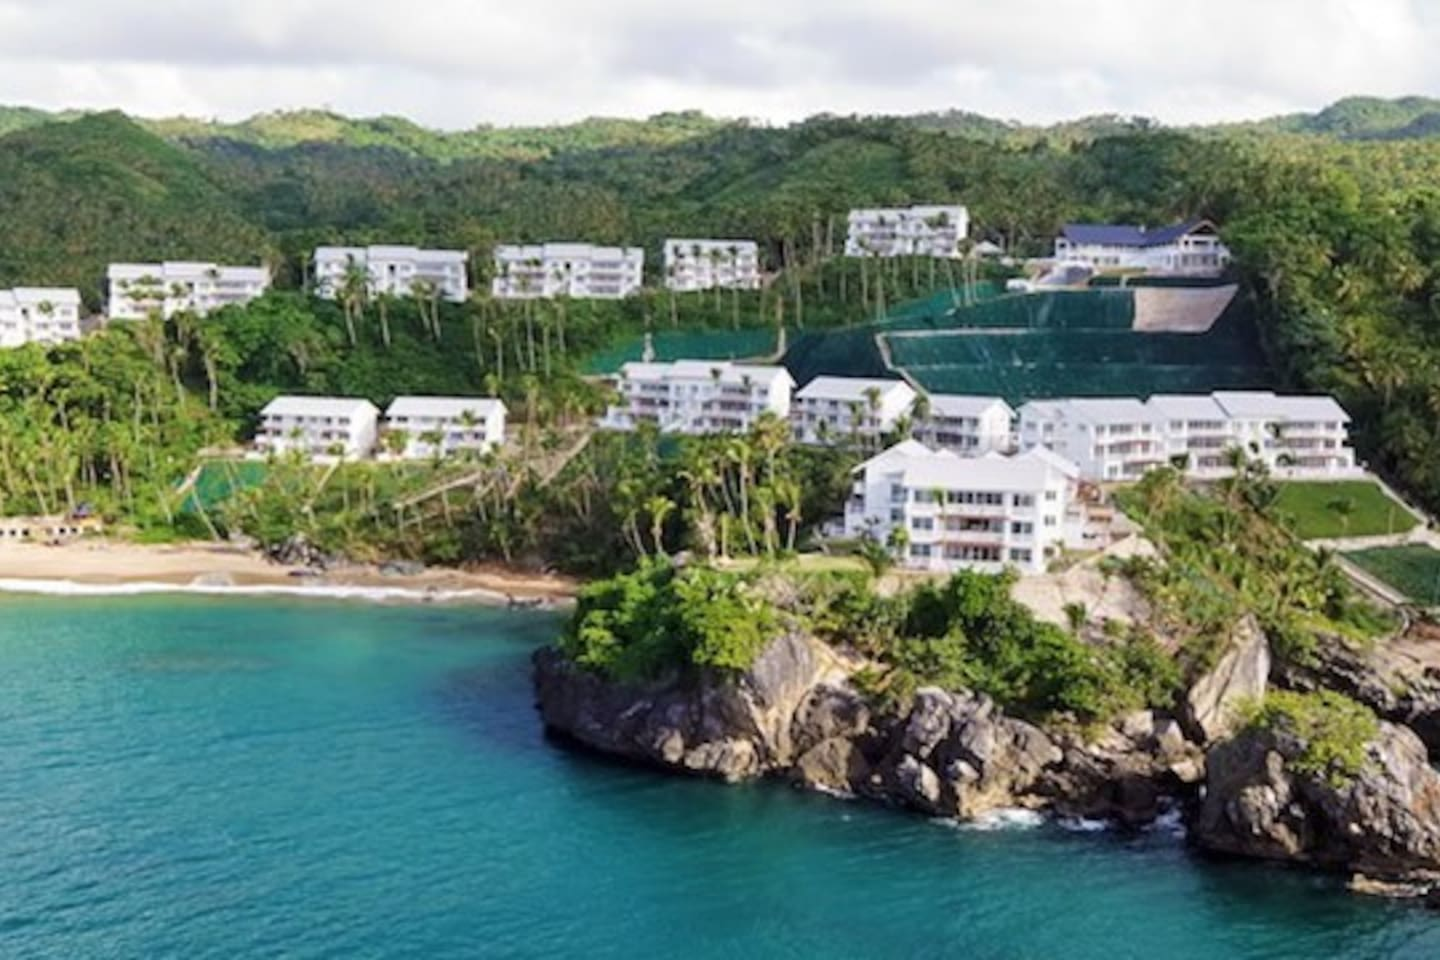 Located in a hill facing the water in Samana Bay